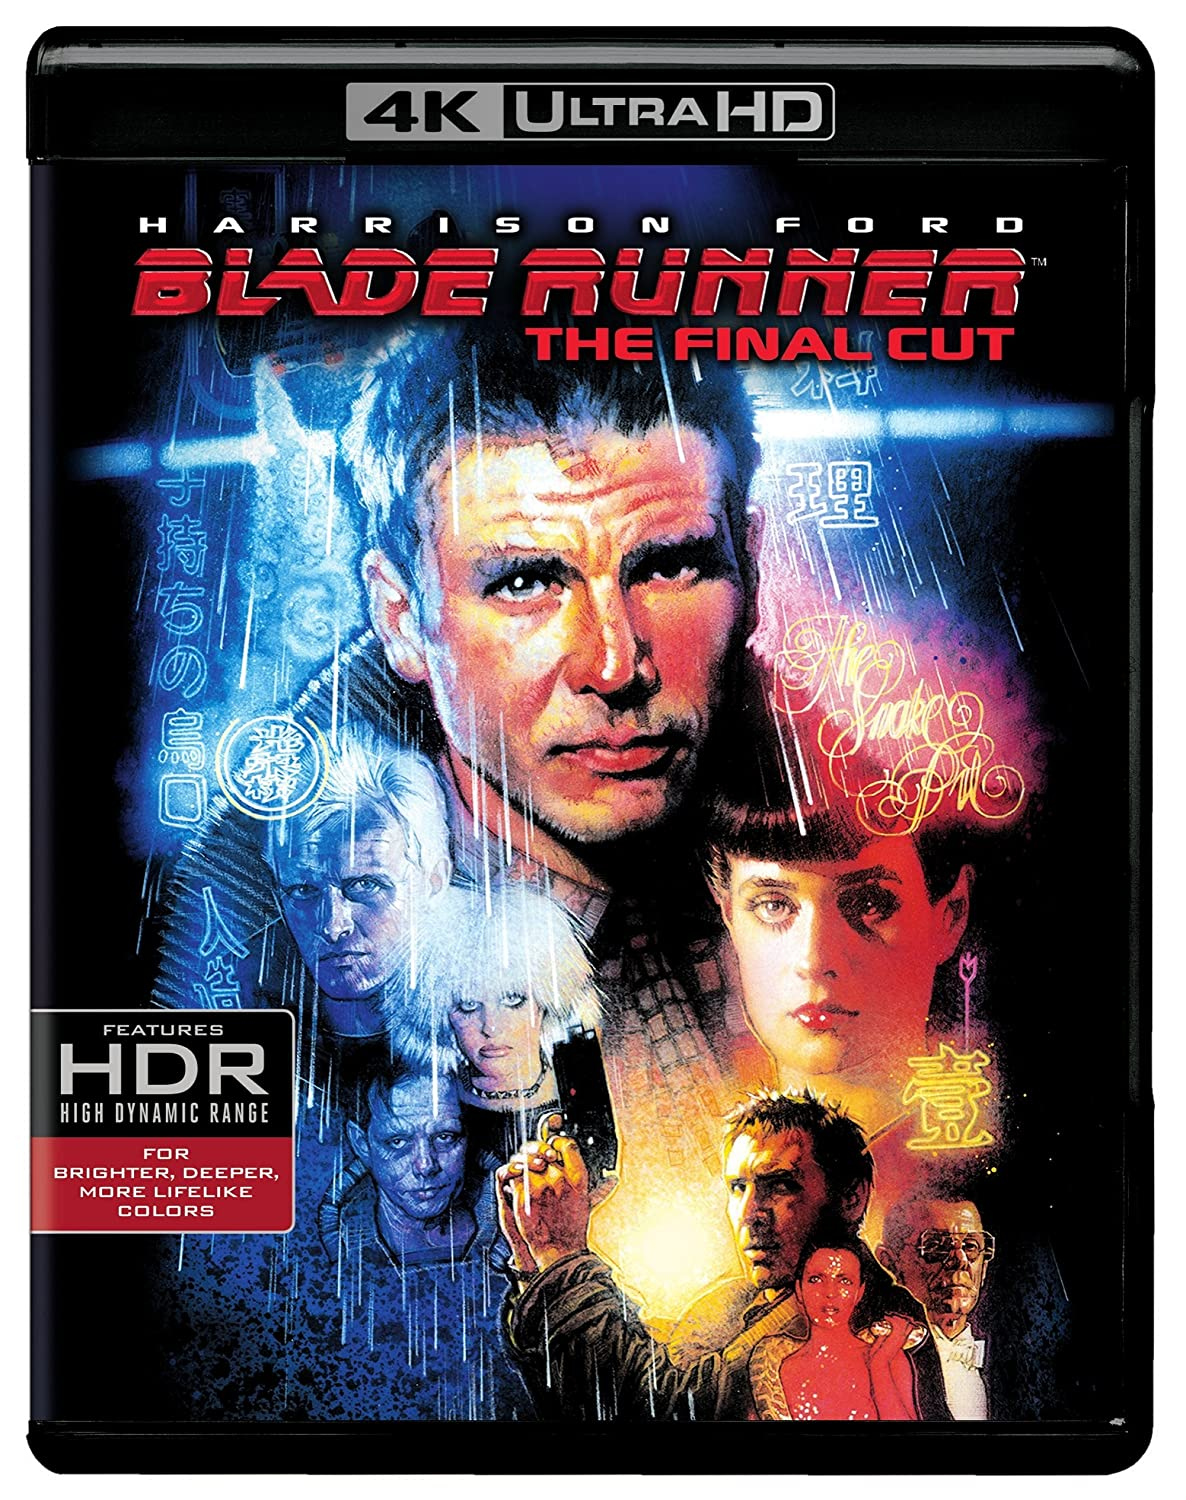 Blade Runner: The Final Cut 4k UHD